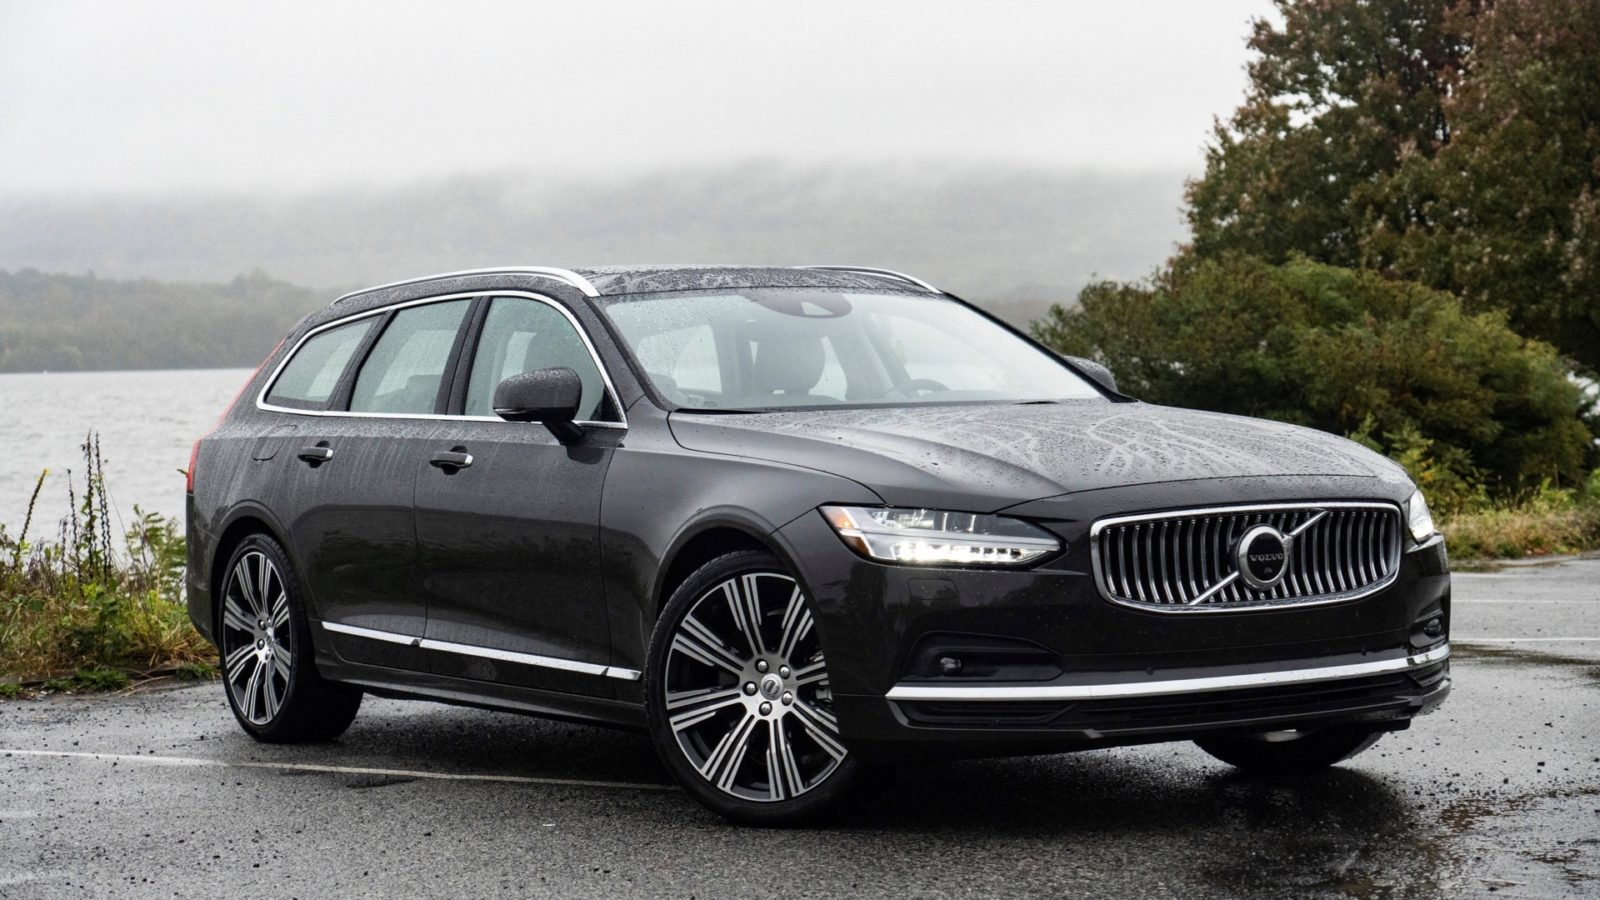 volvo-v60-and-v90-wagons-discontinued-in-us,-cross-country-models-live-on